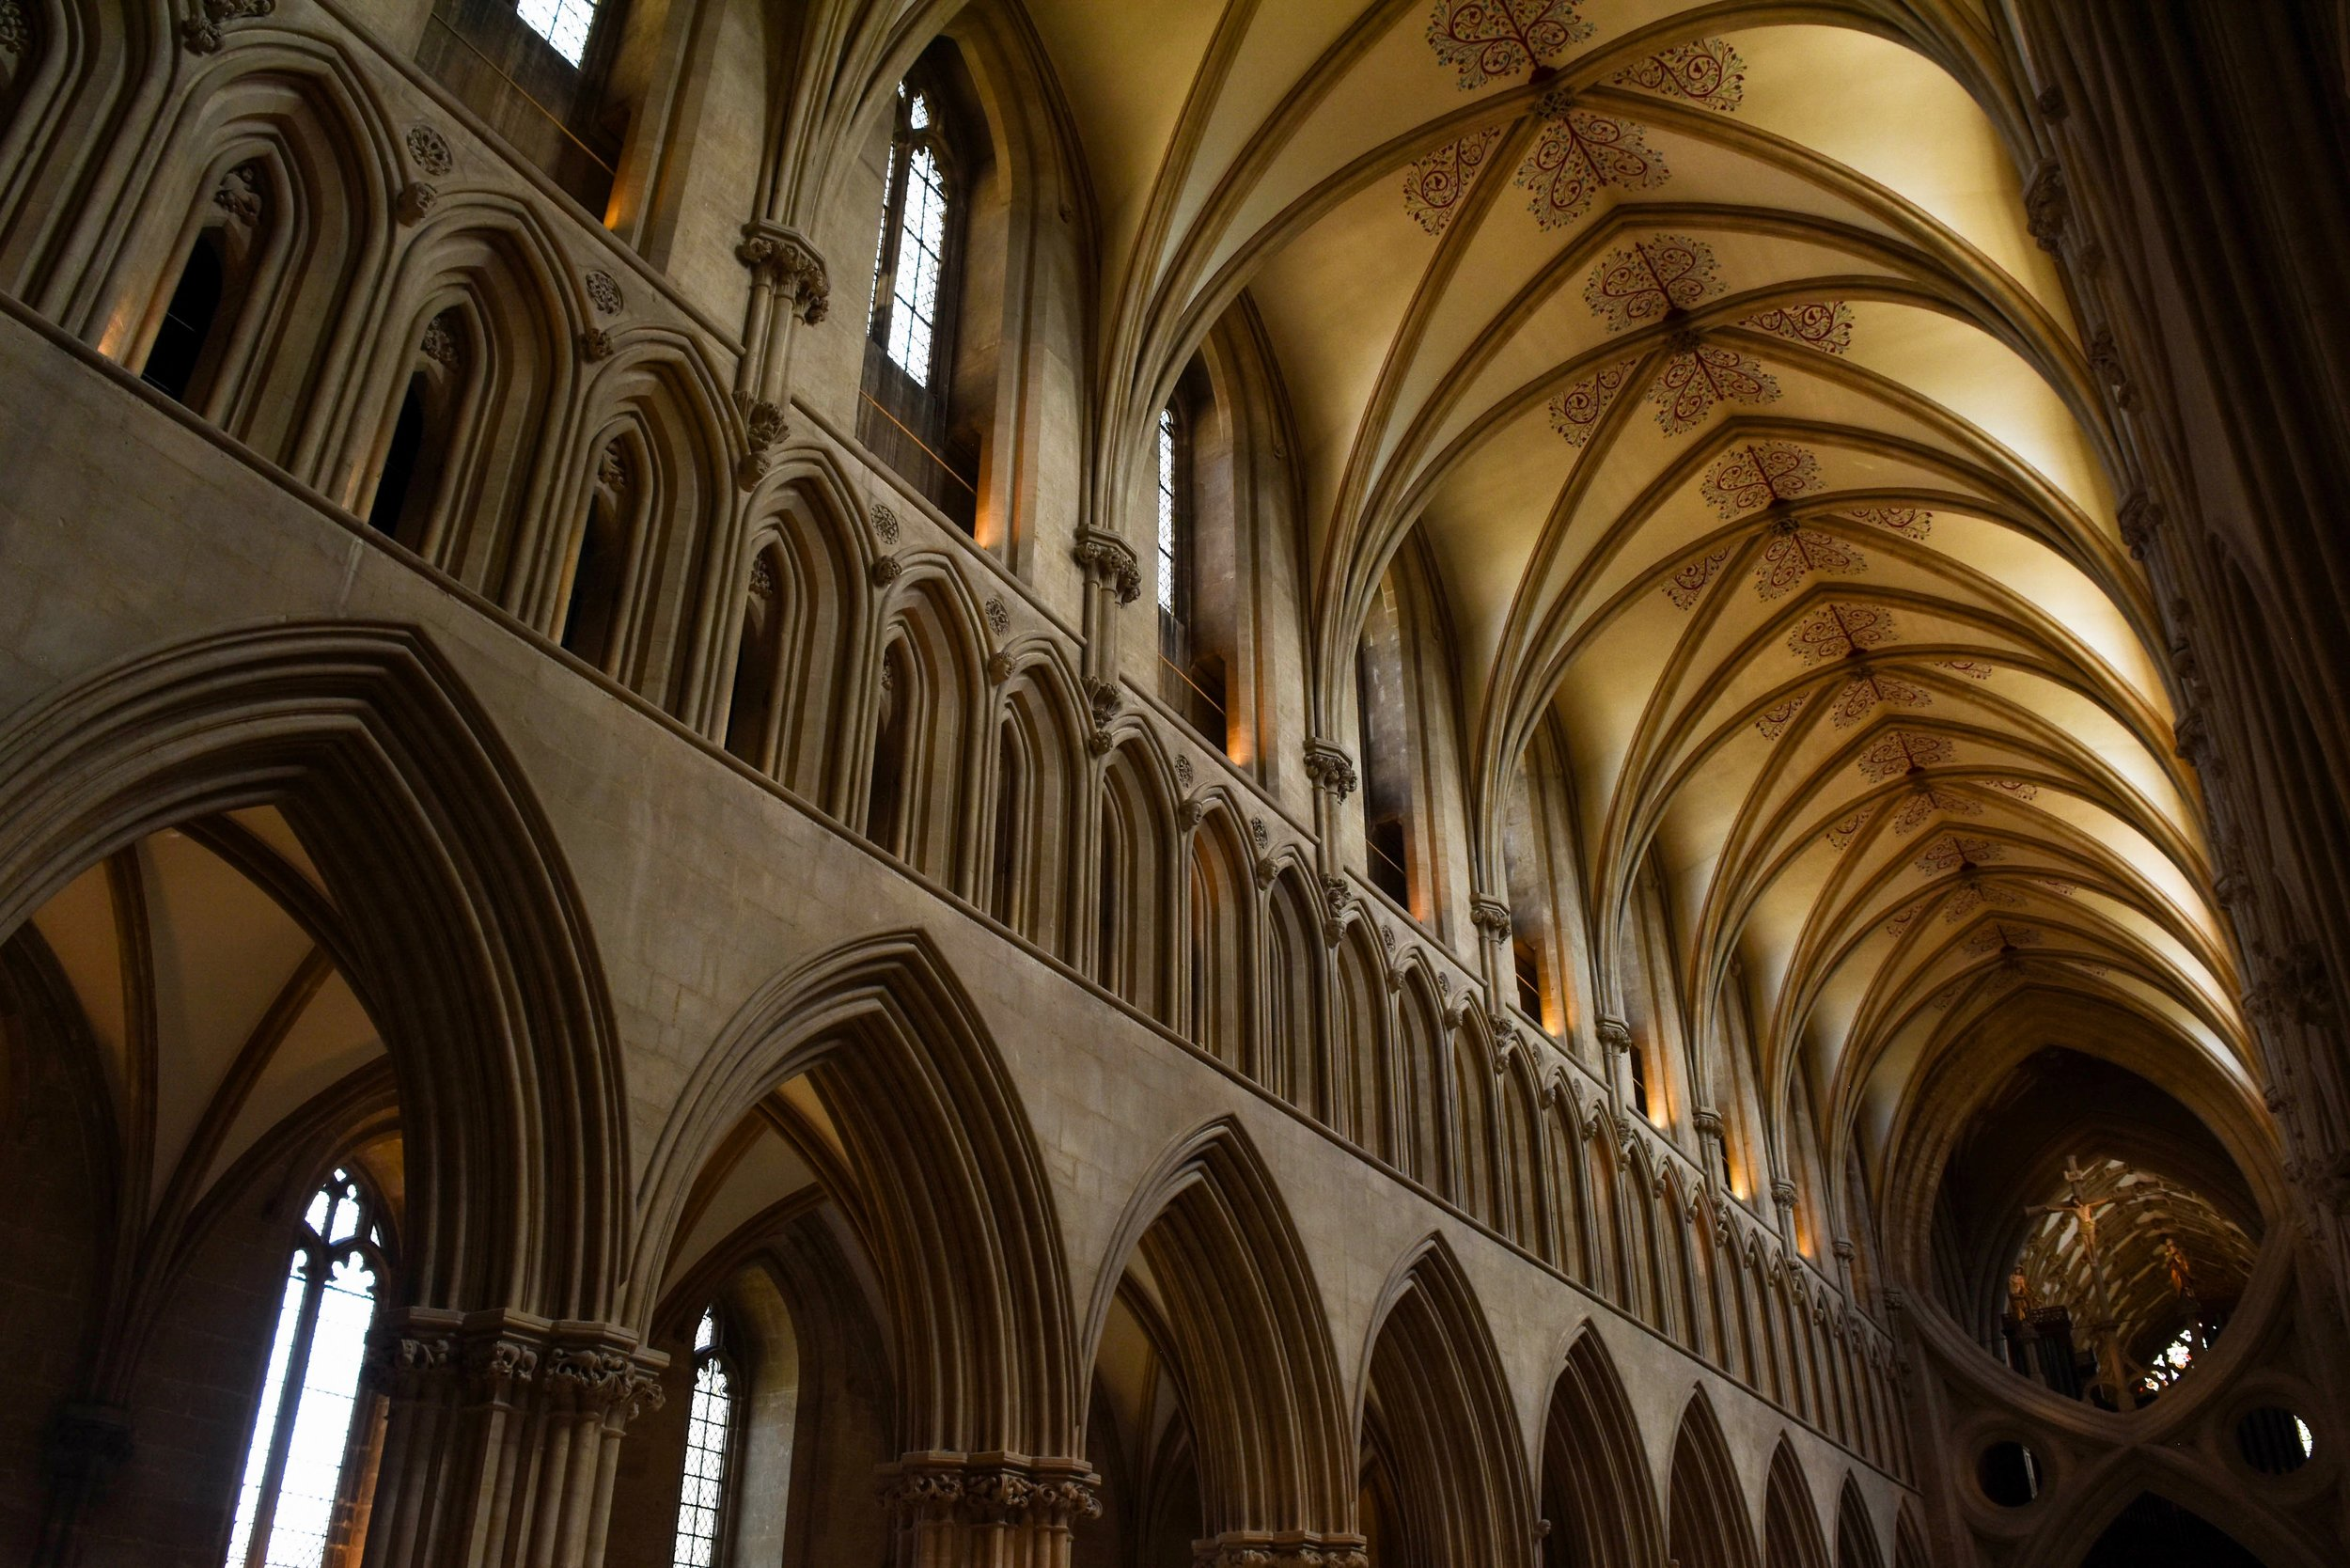 Wells Cathedral in Somerset, England, features vaulted ceilings and a distinctive structure of scissor-like supporting arches, seen in the photo's lower right corner.